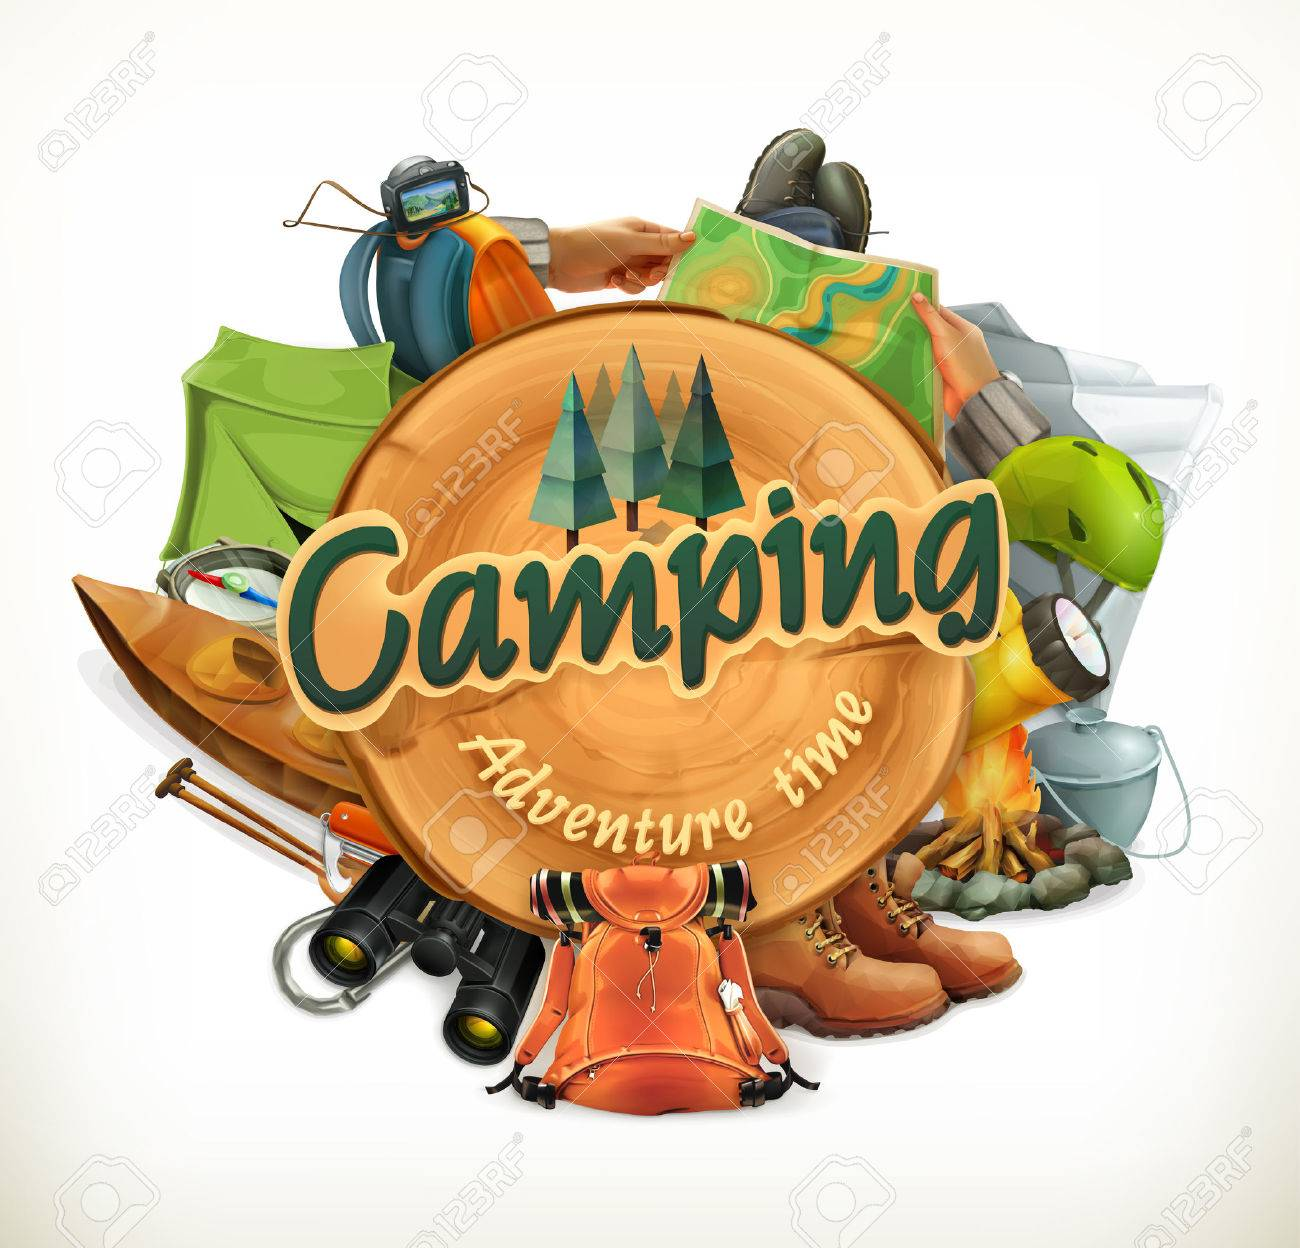 Camping, adventure time illustration - 52144272